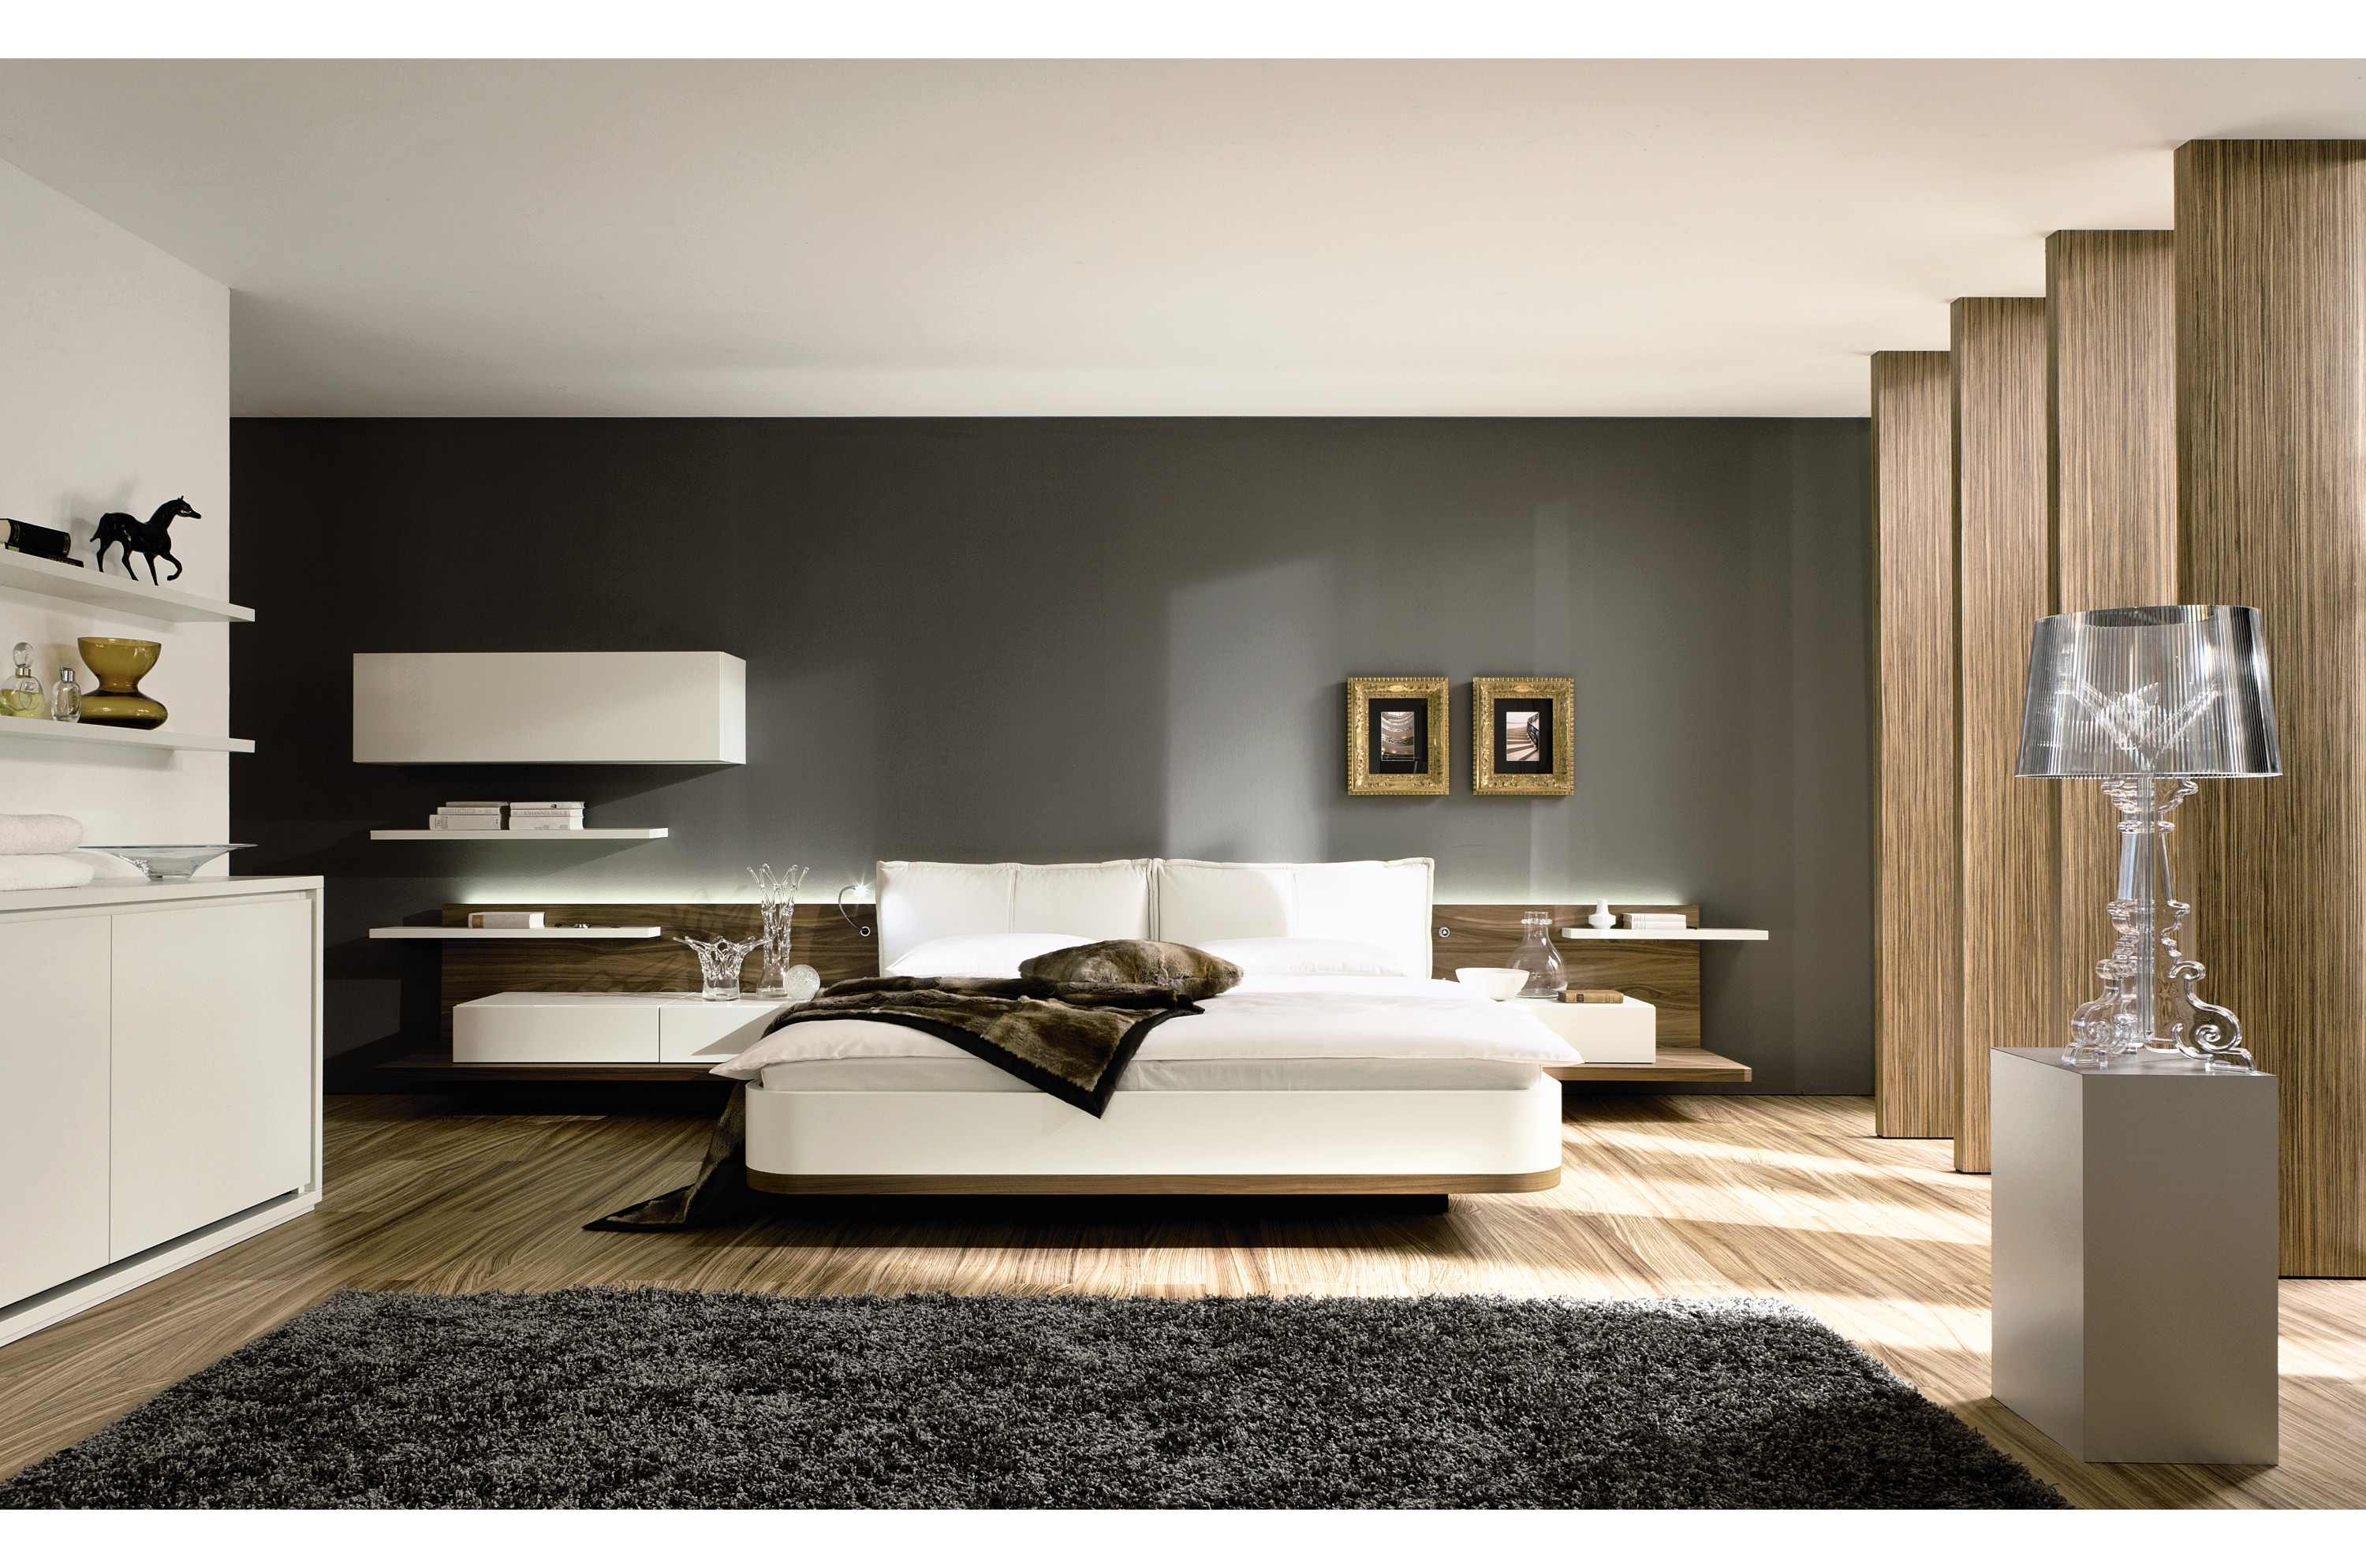 Modern bedroom innovation bedroom ideas interior design and many kodok demo - Interior bedroom design ...